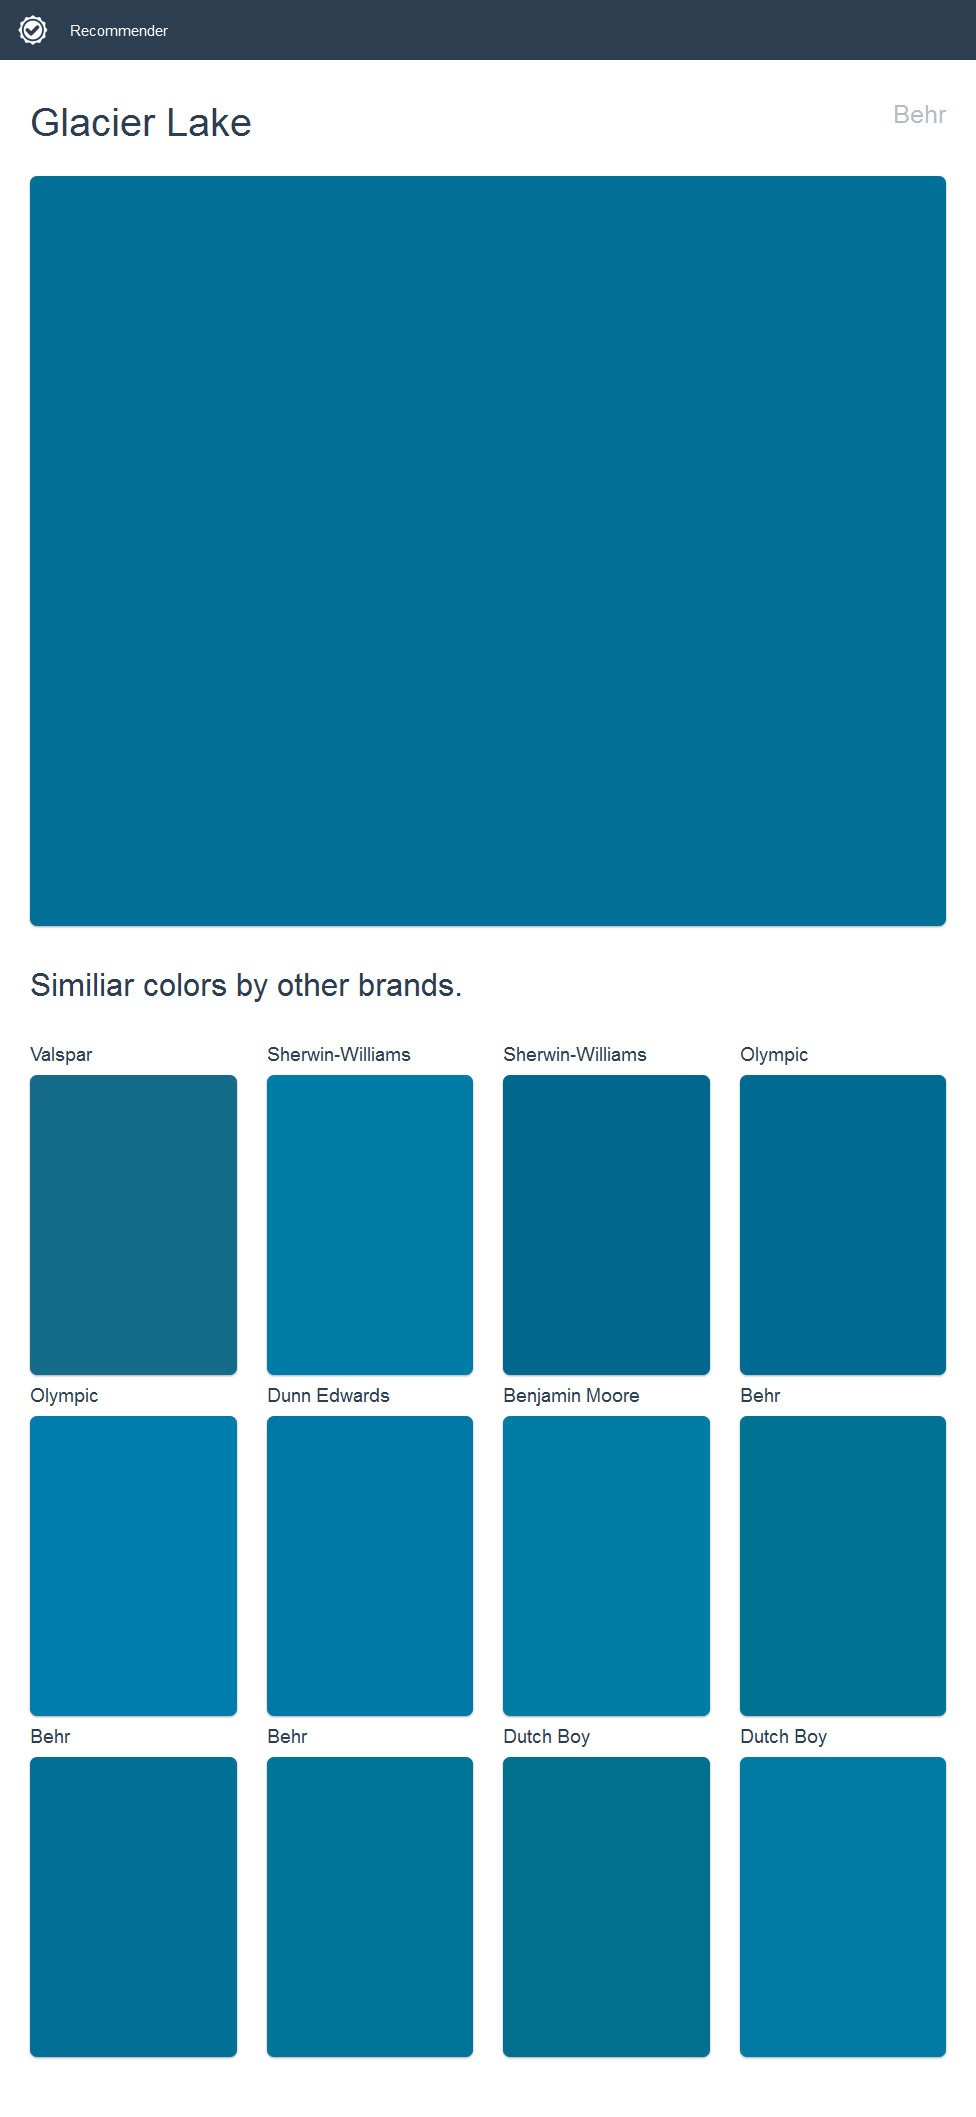 Glacier Lake, Behr. Click the image to see similiar colors by other brands.